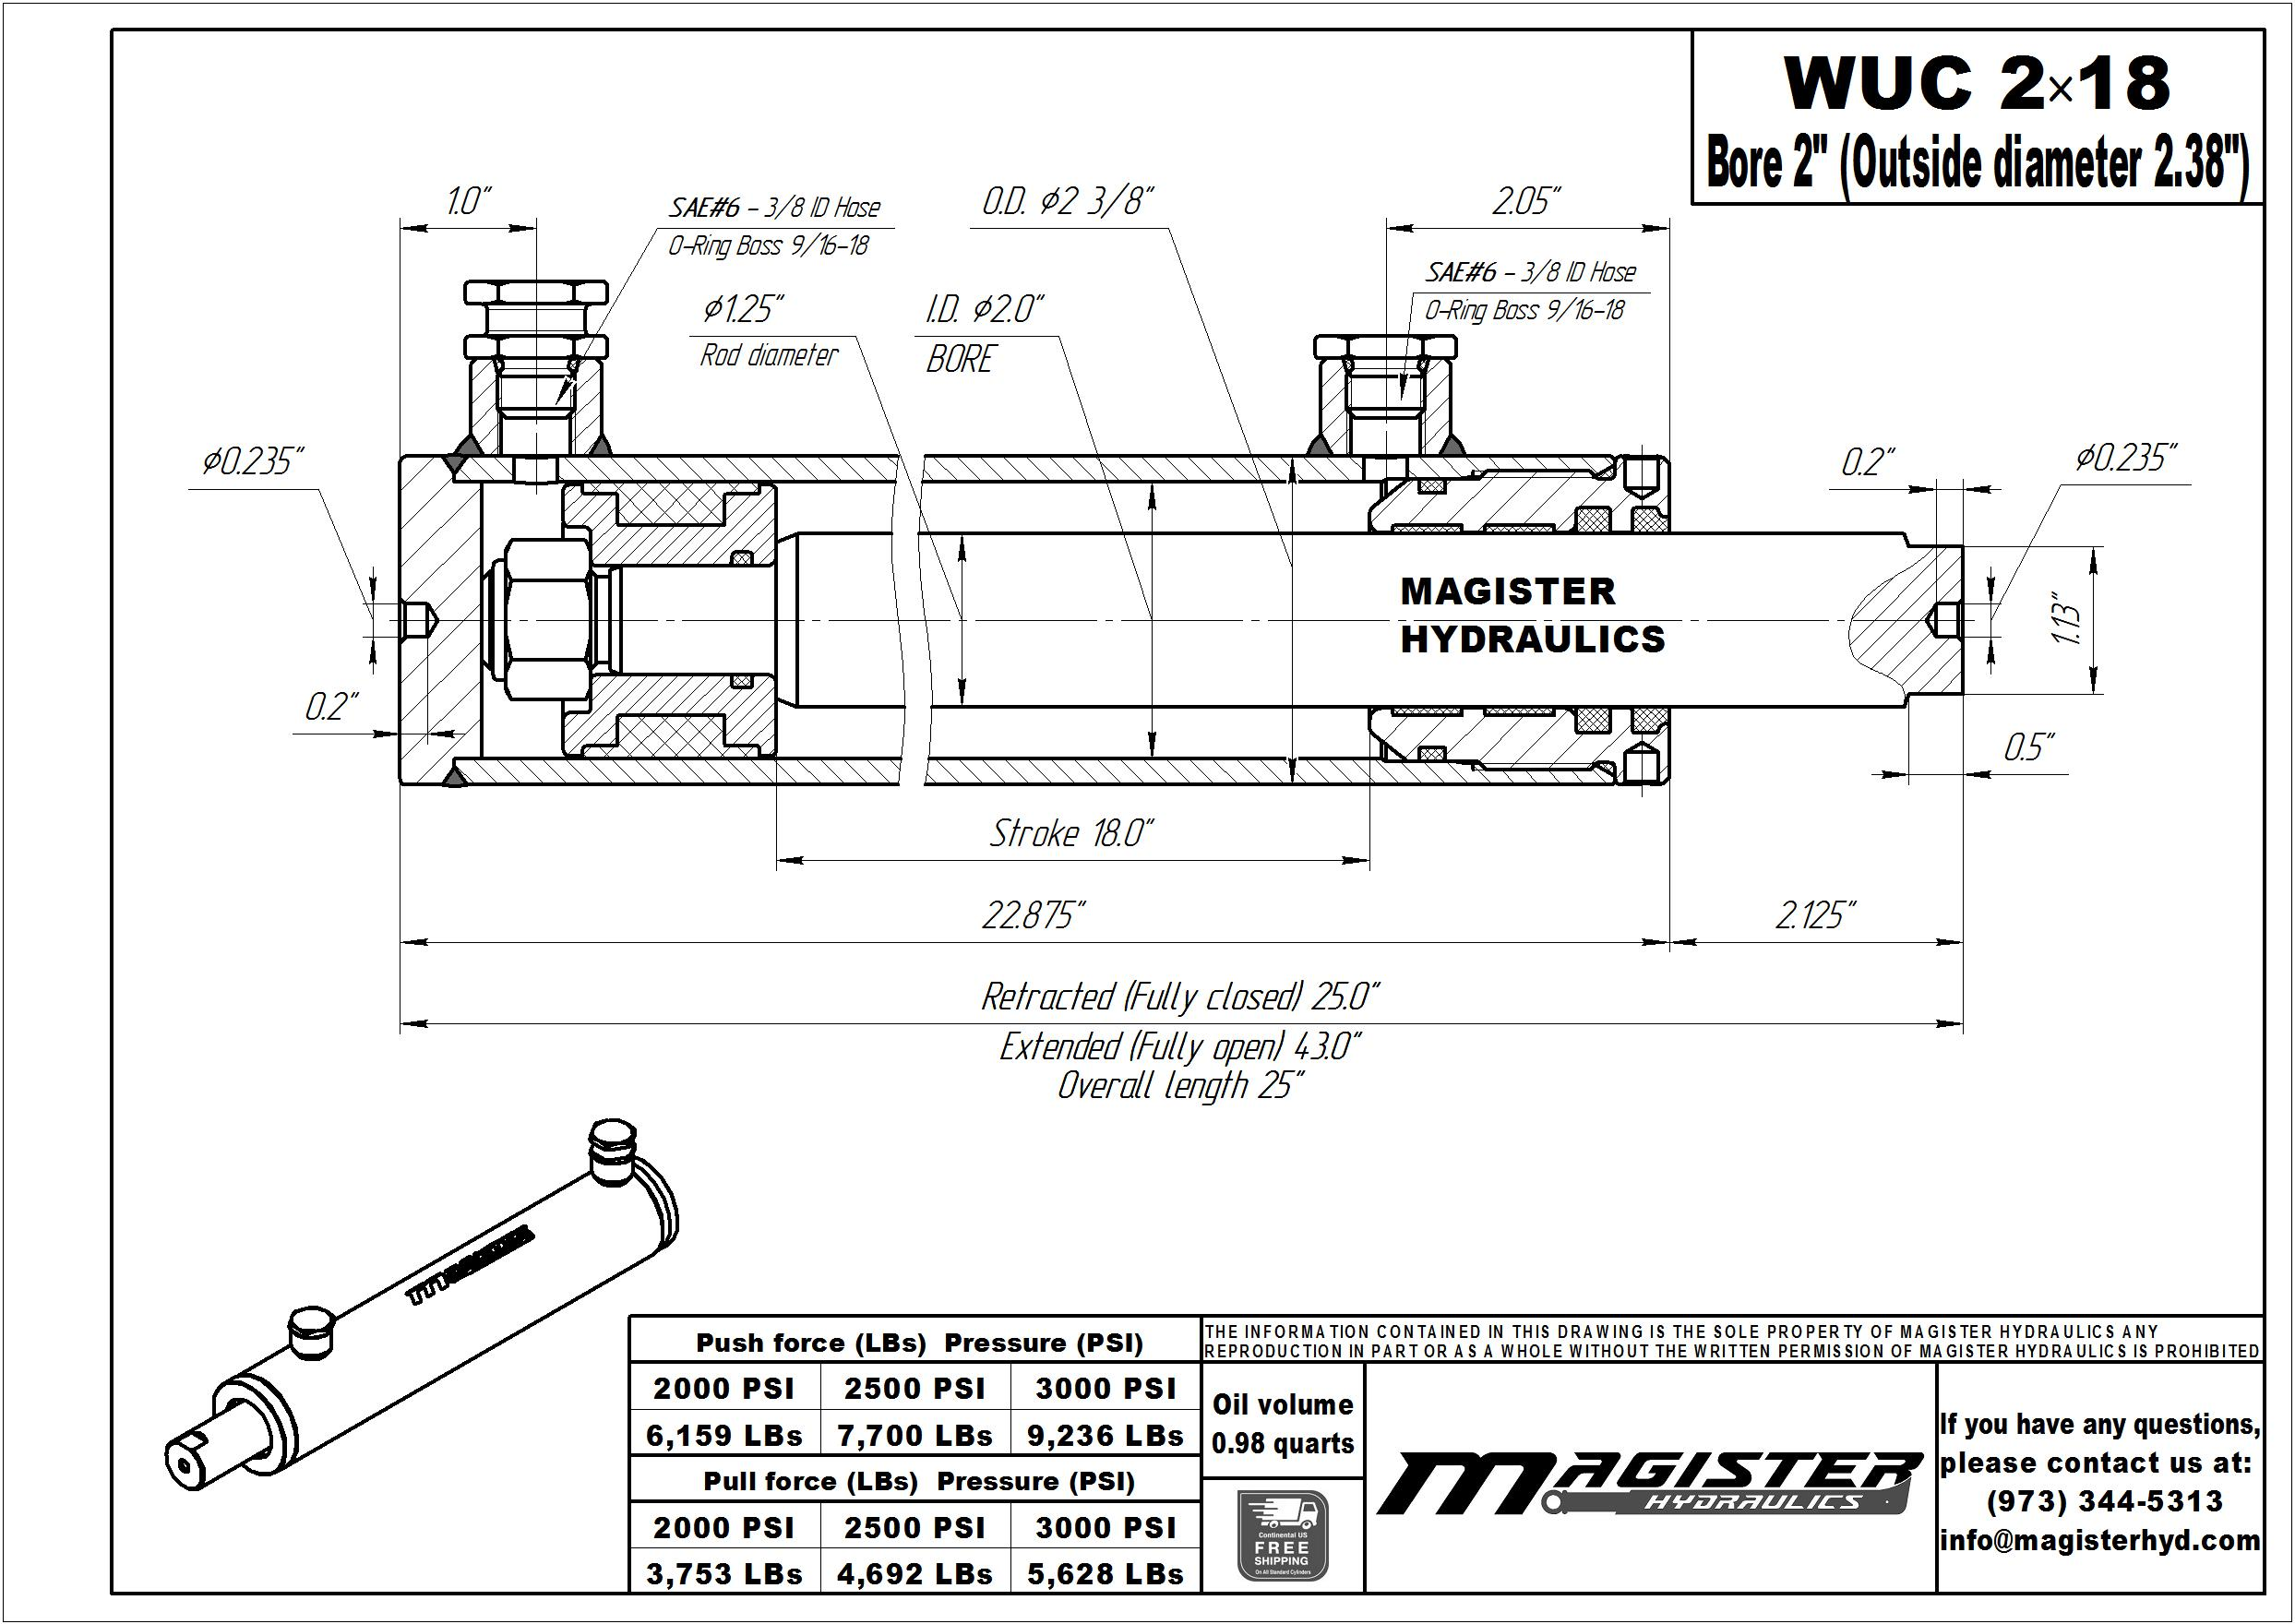 2 bore x 18 stroke hydraulic cylinder, welded universal double acting cylinder | Magister Hydraulics